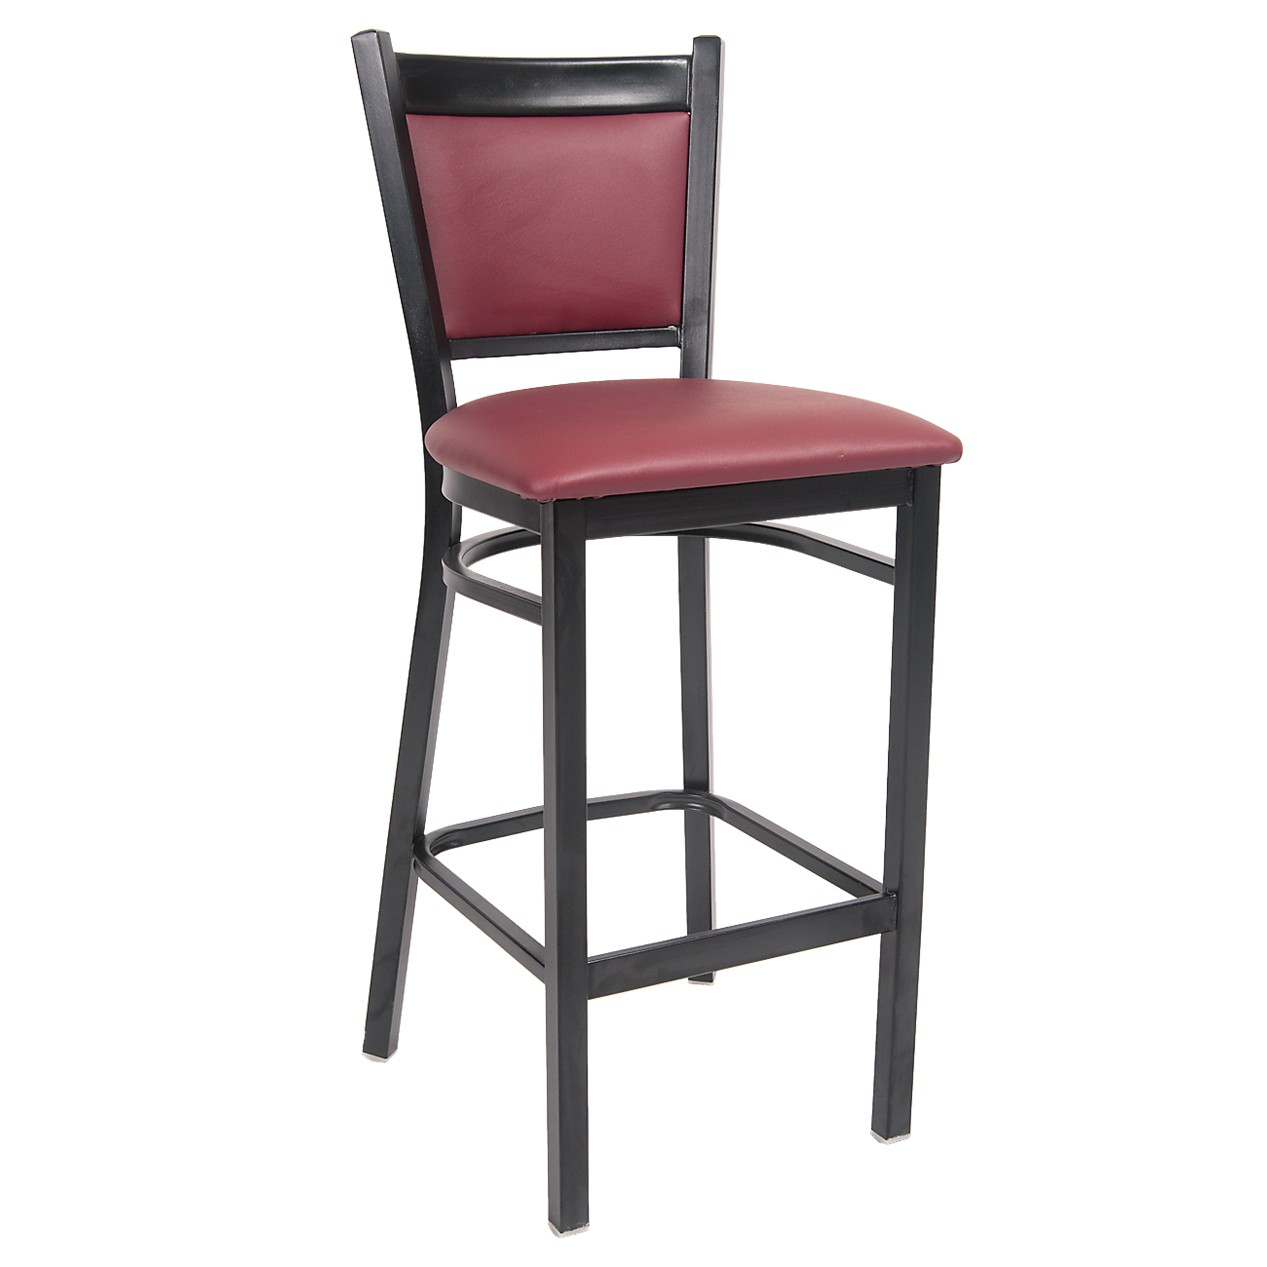 Black Metal Bar Stool With Burgundy Vinyl Seat And Back